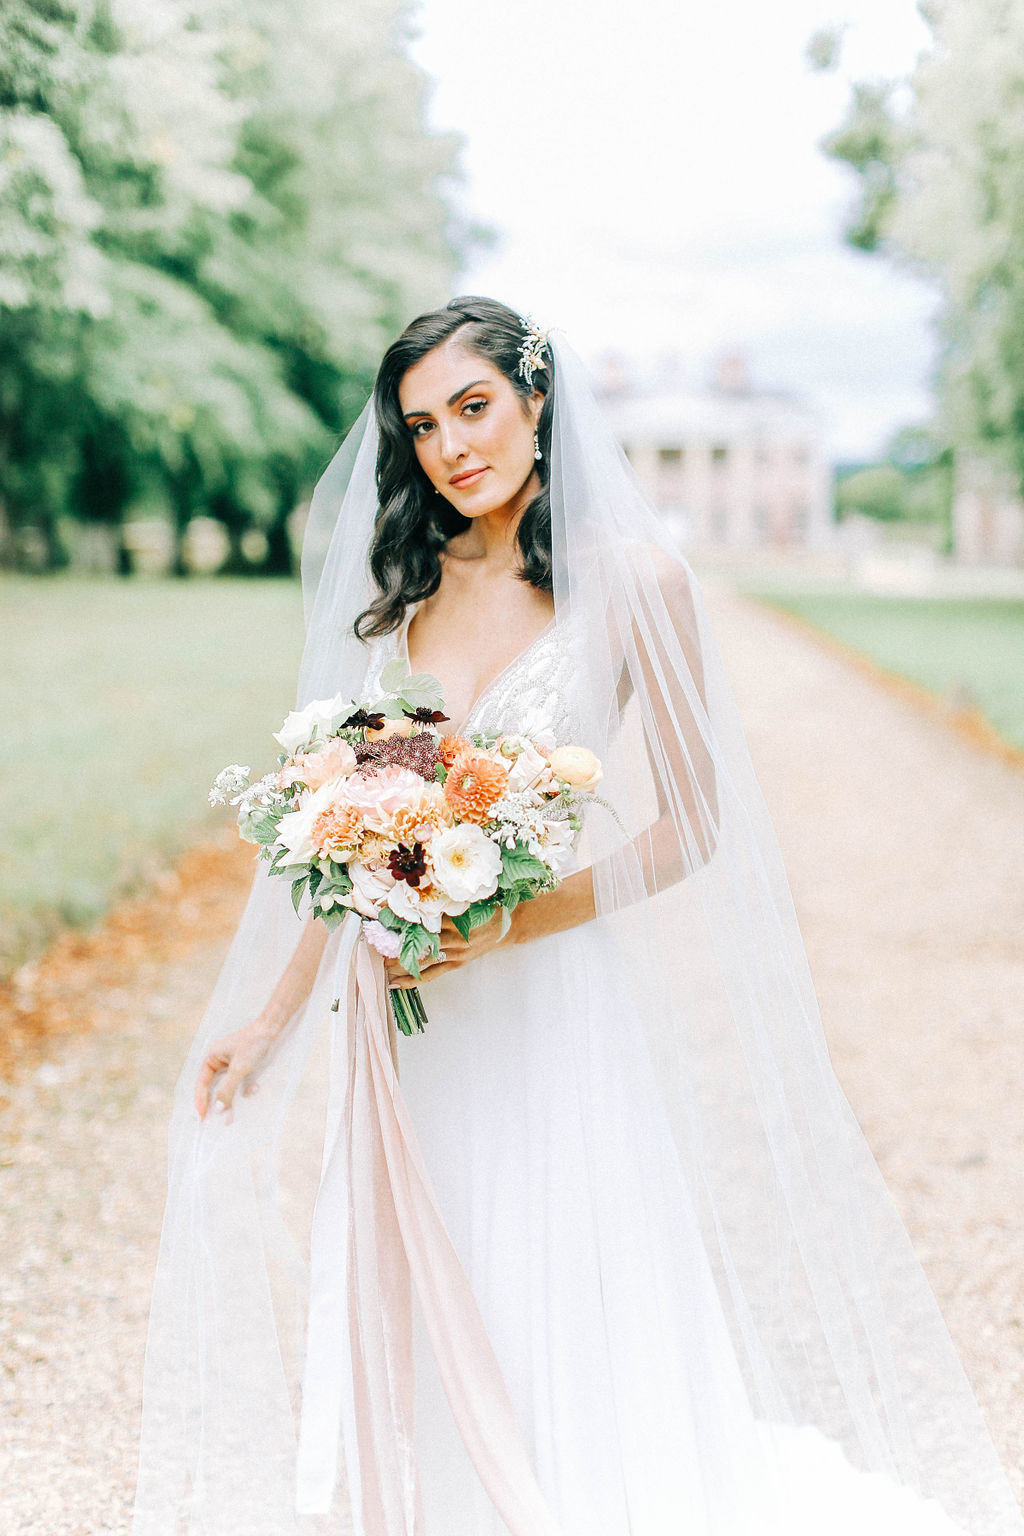 Romantic Bridal Gown with Peach and Ivory Bridal Bouquet